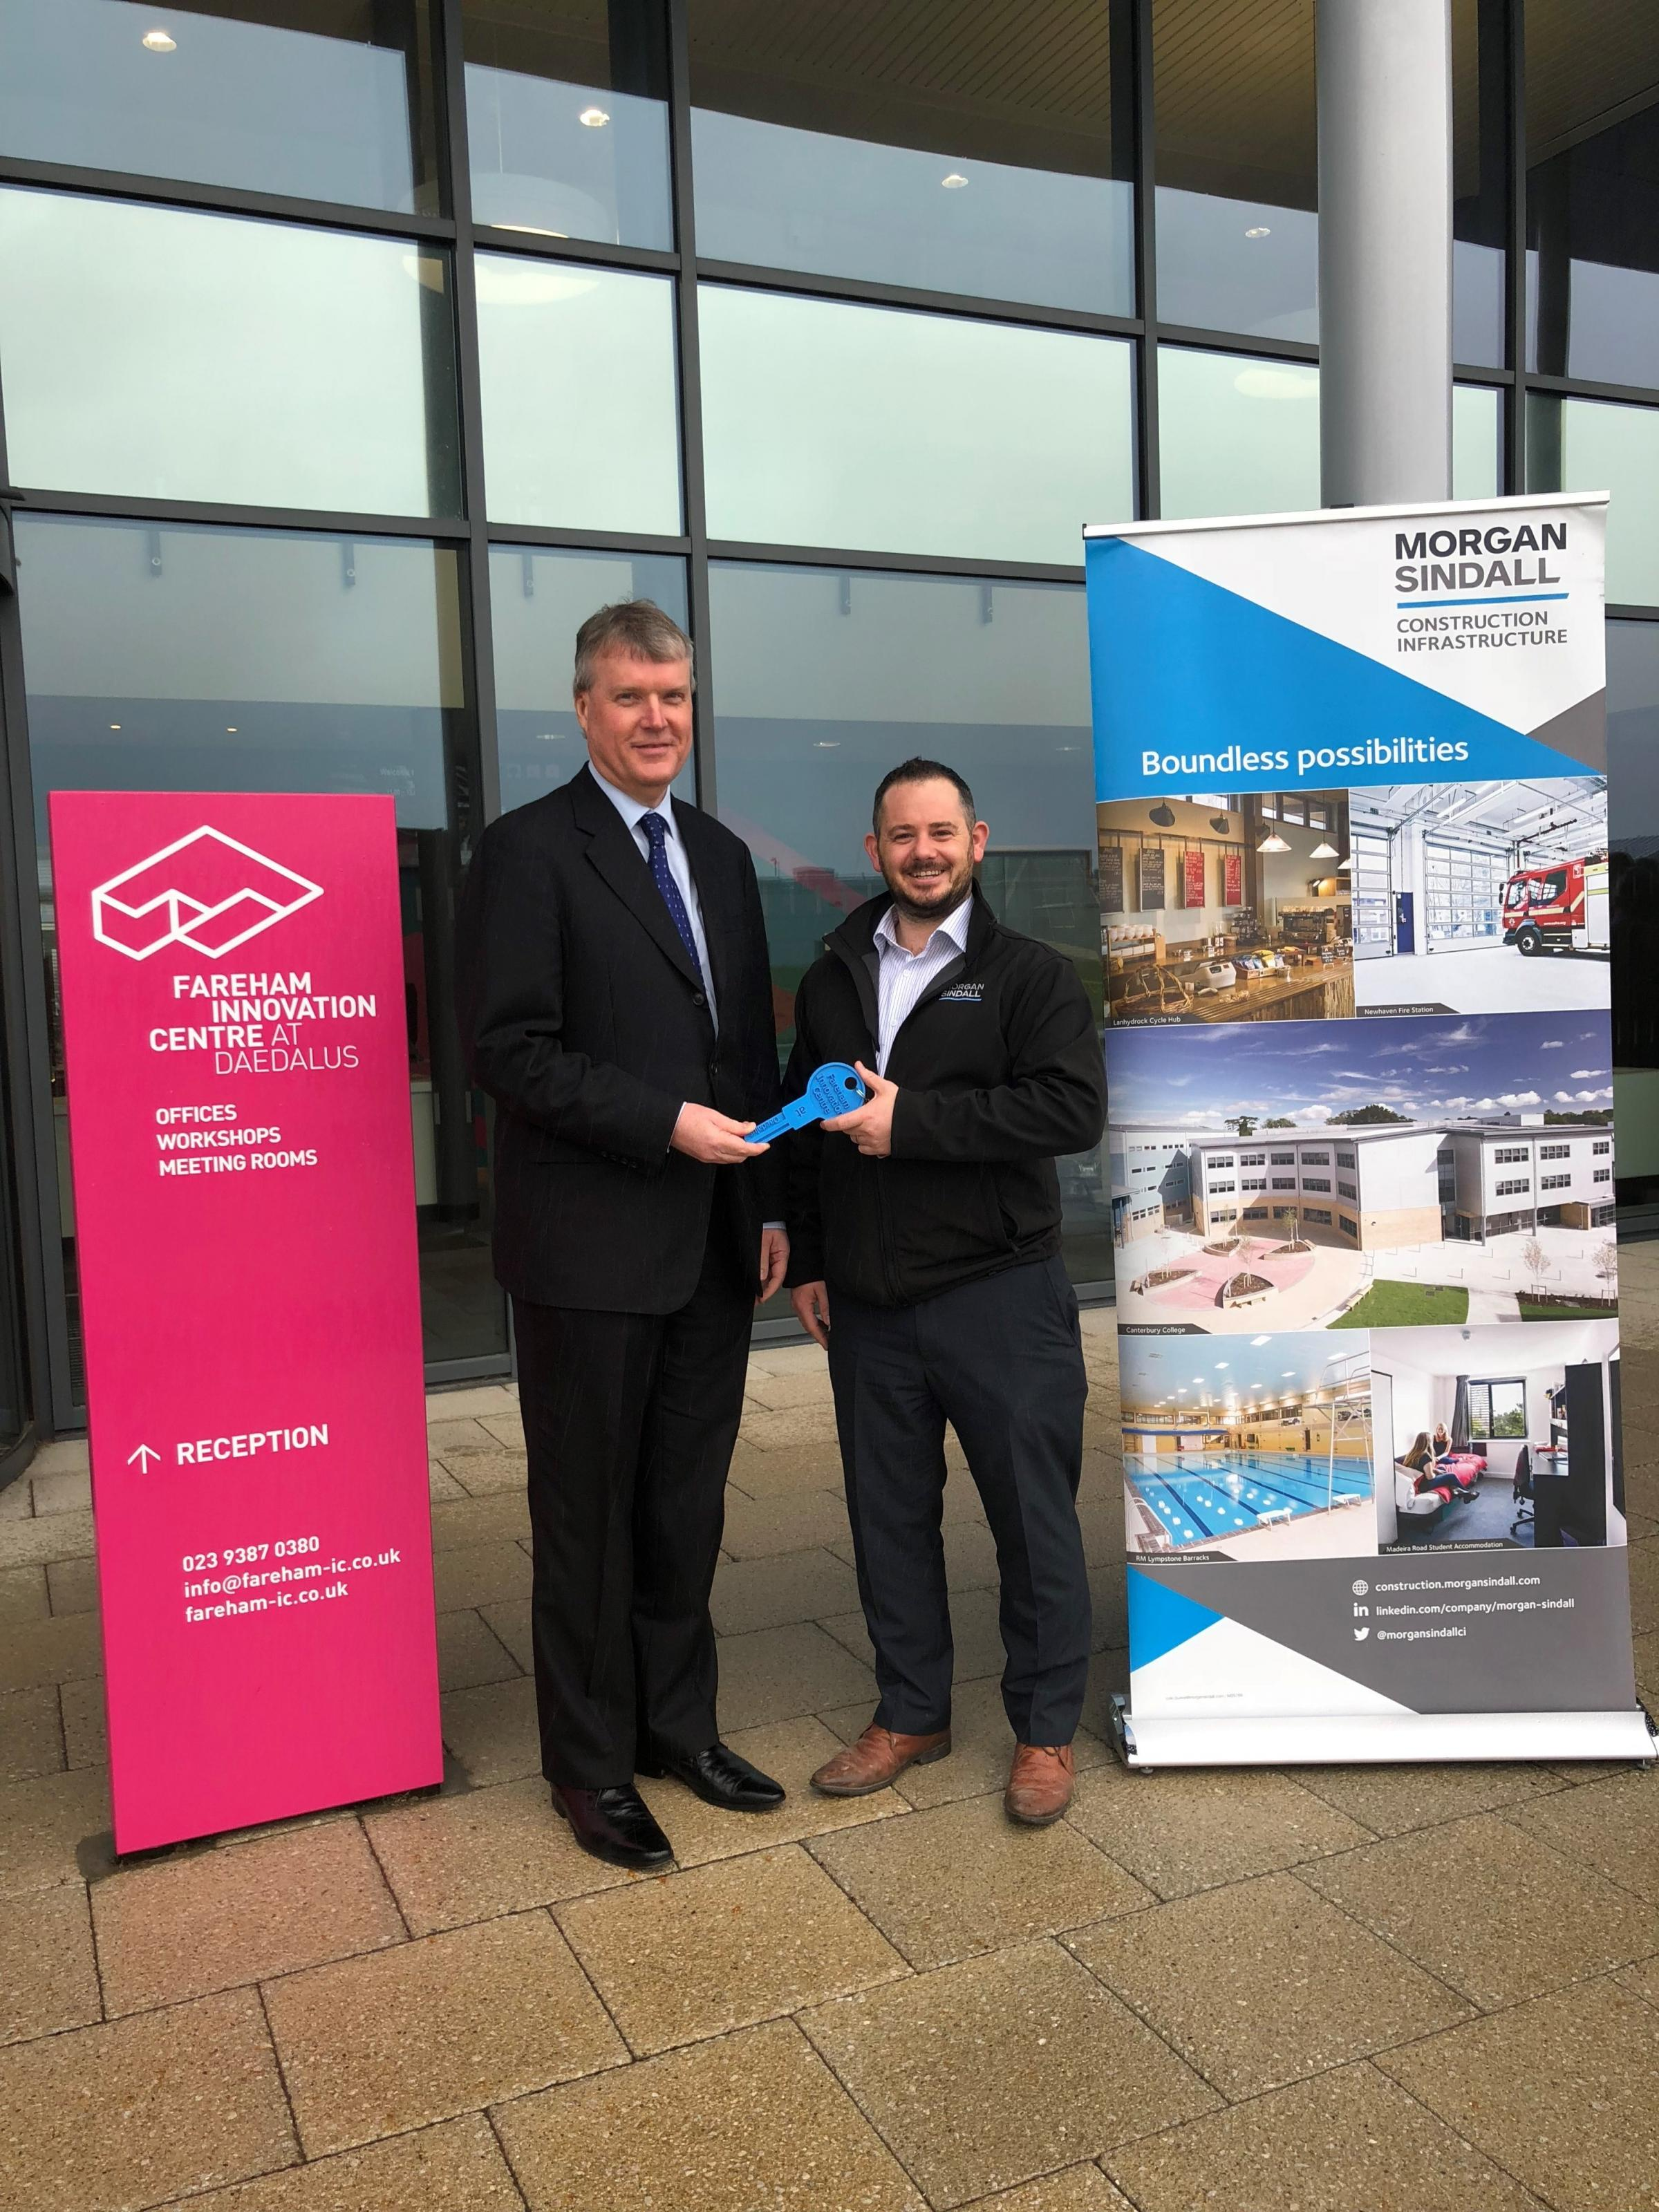 Cllr Sean Woodward receives the keys to the Fareham Innovation Centre extension from Mike Day, project manager for builders Morgan Sindall